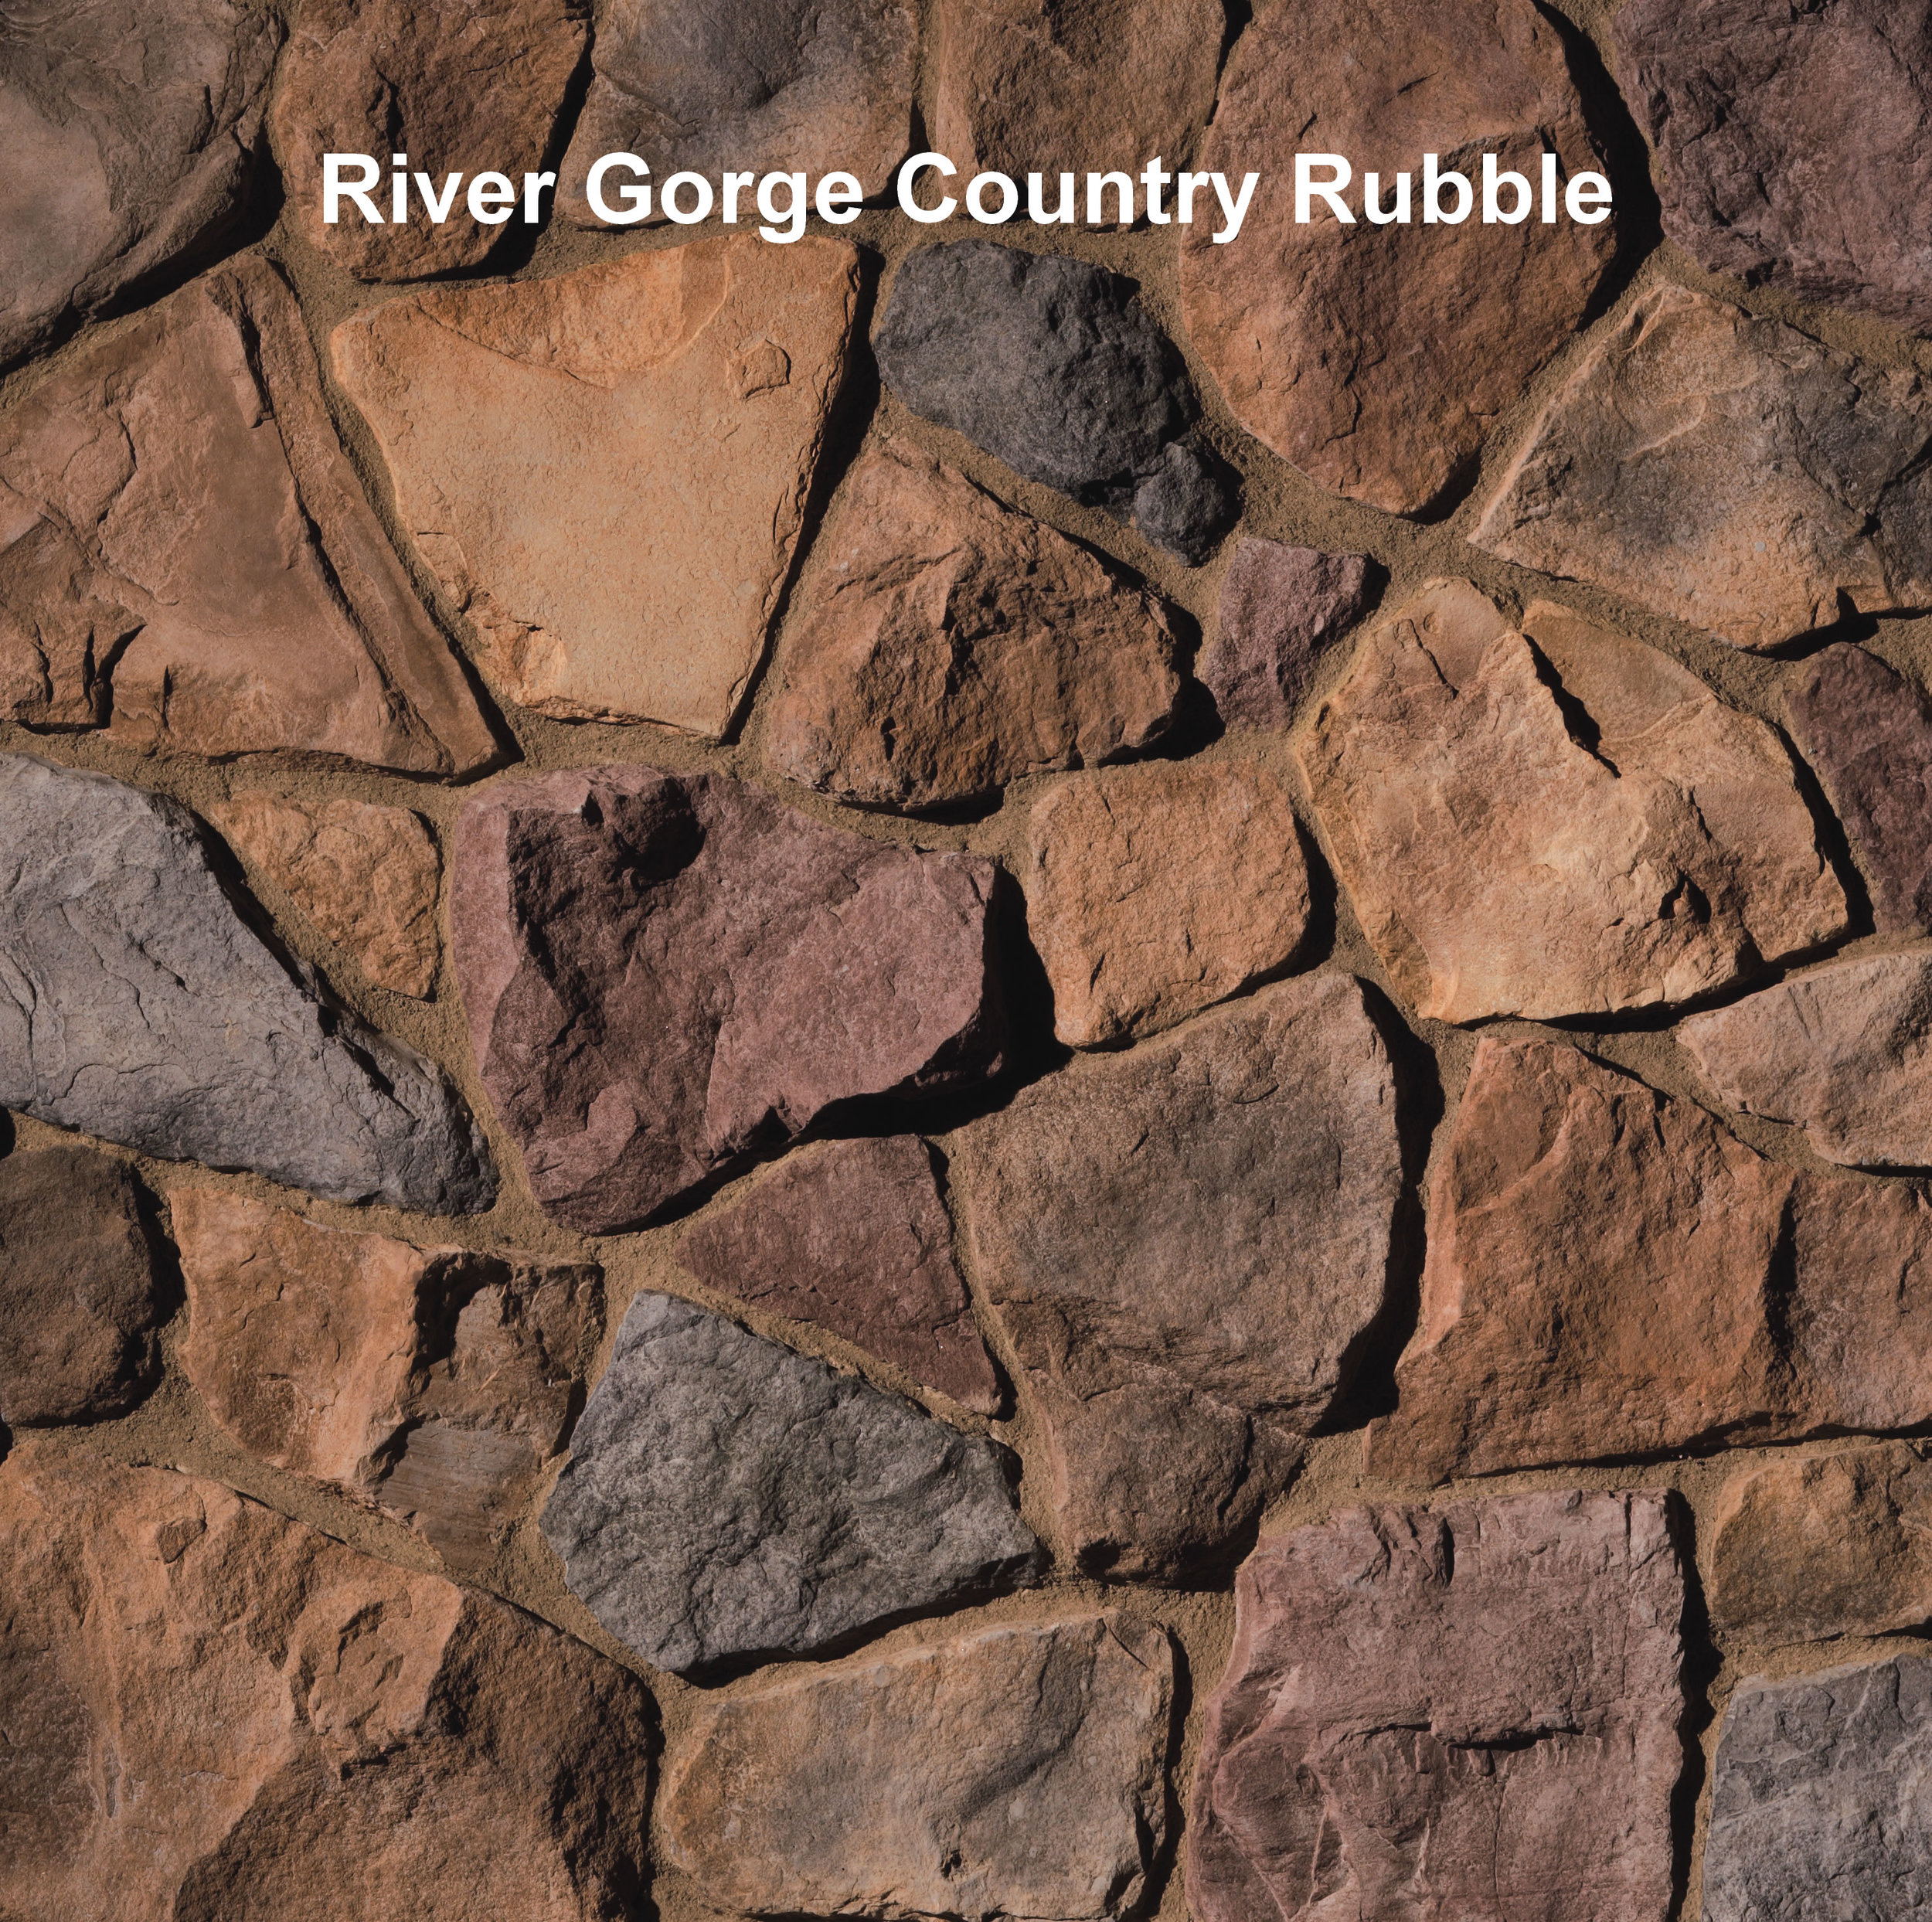 ES_Country Rubble_River Gorge_profile_east.jpg